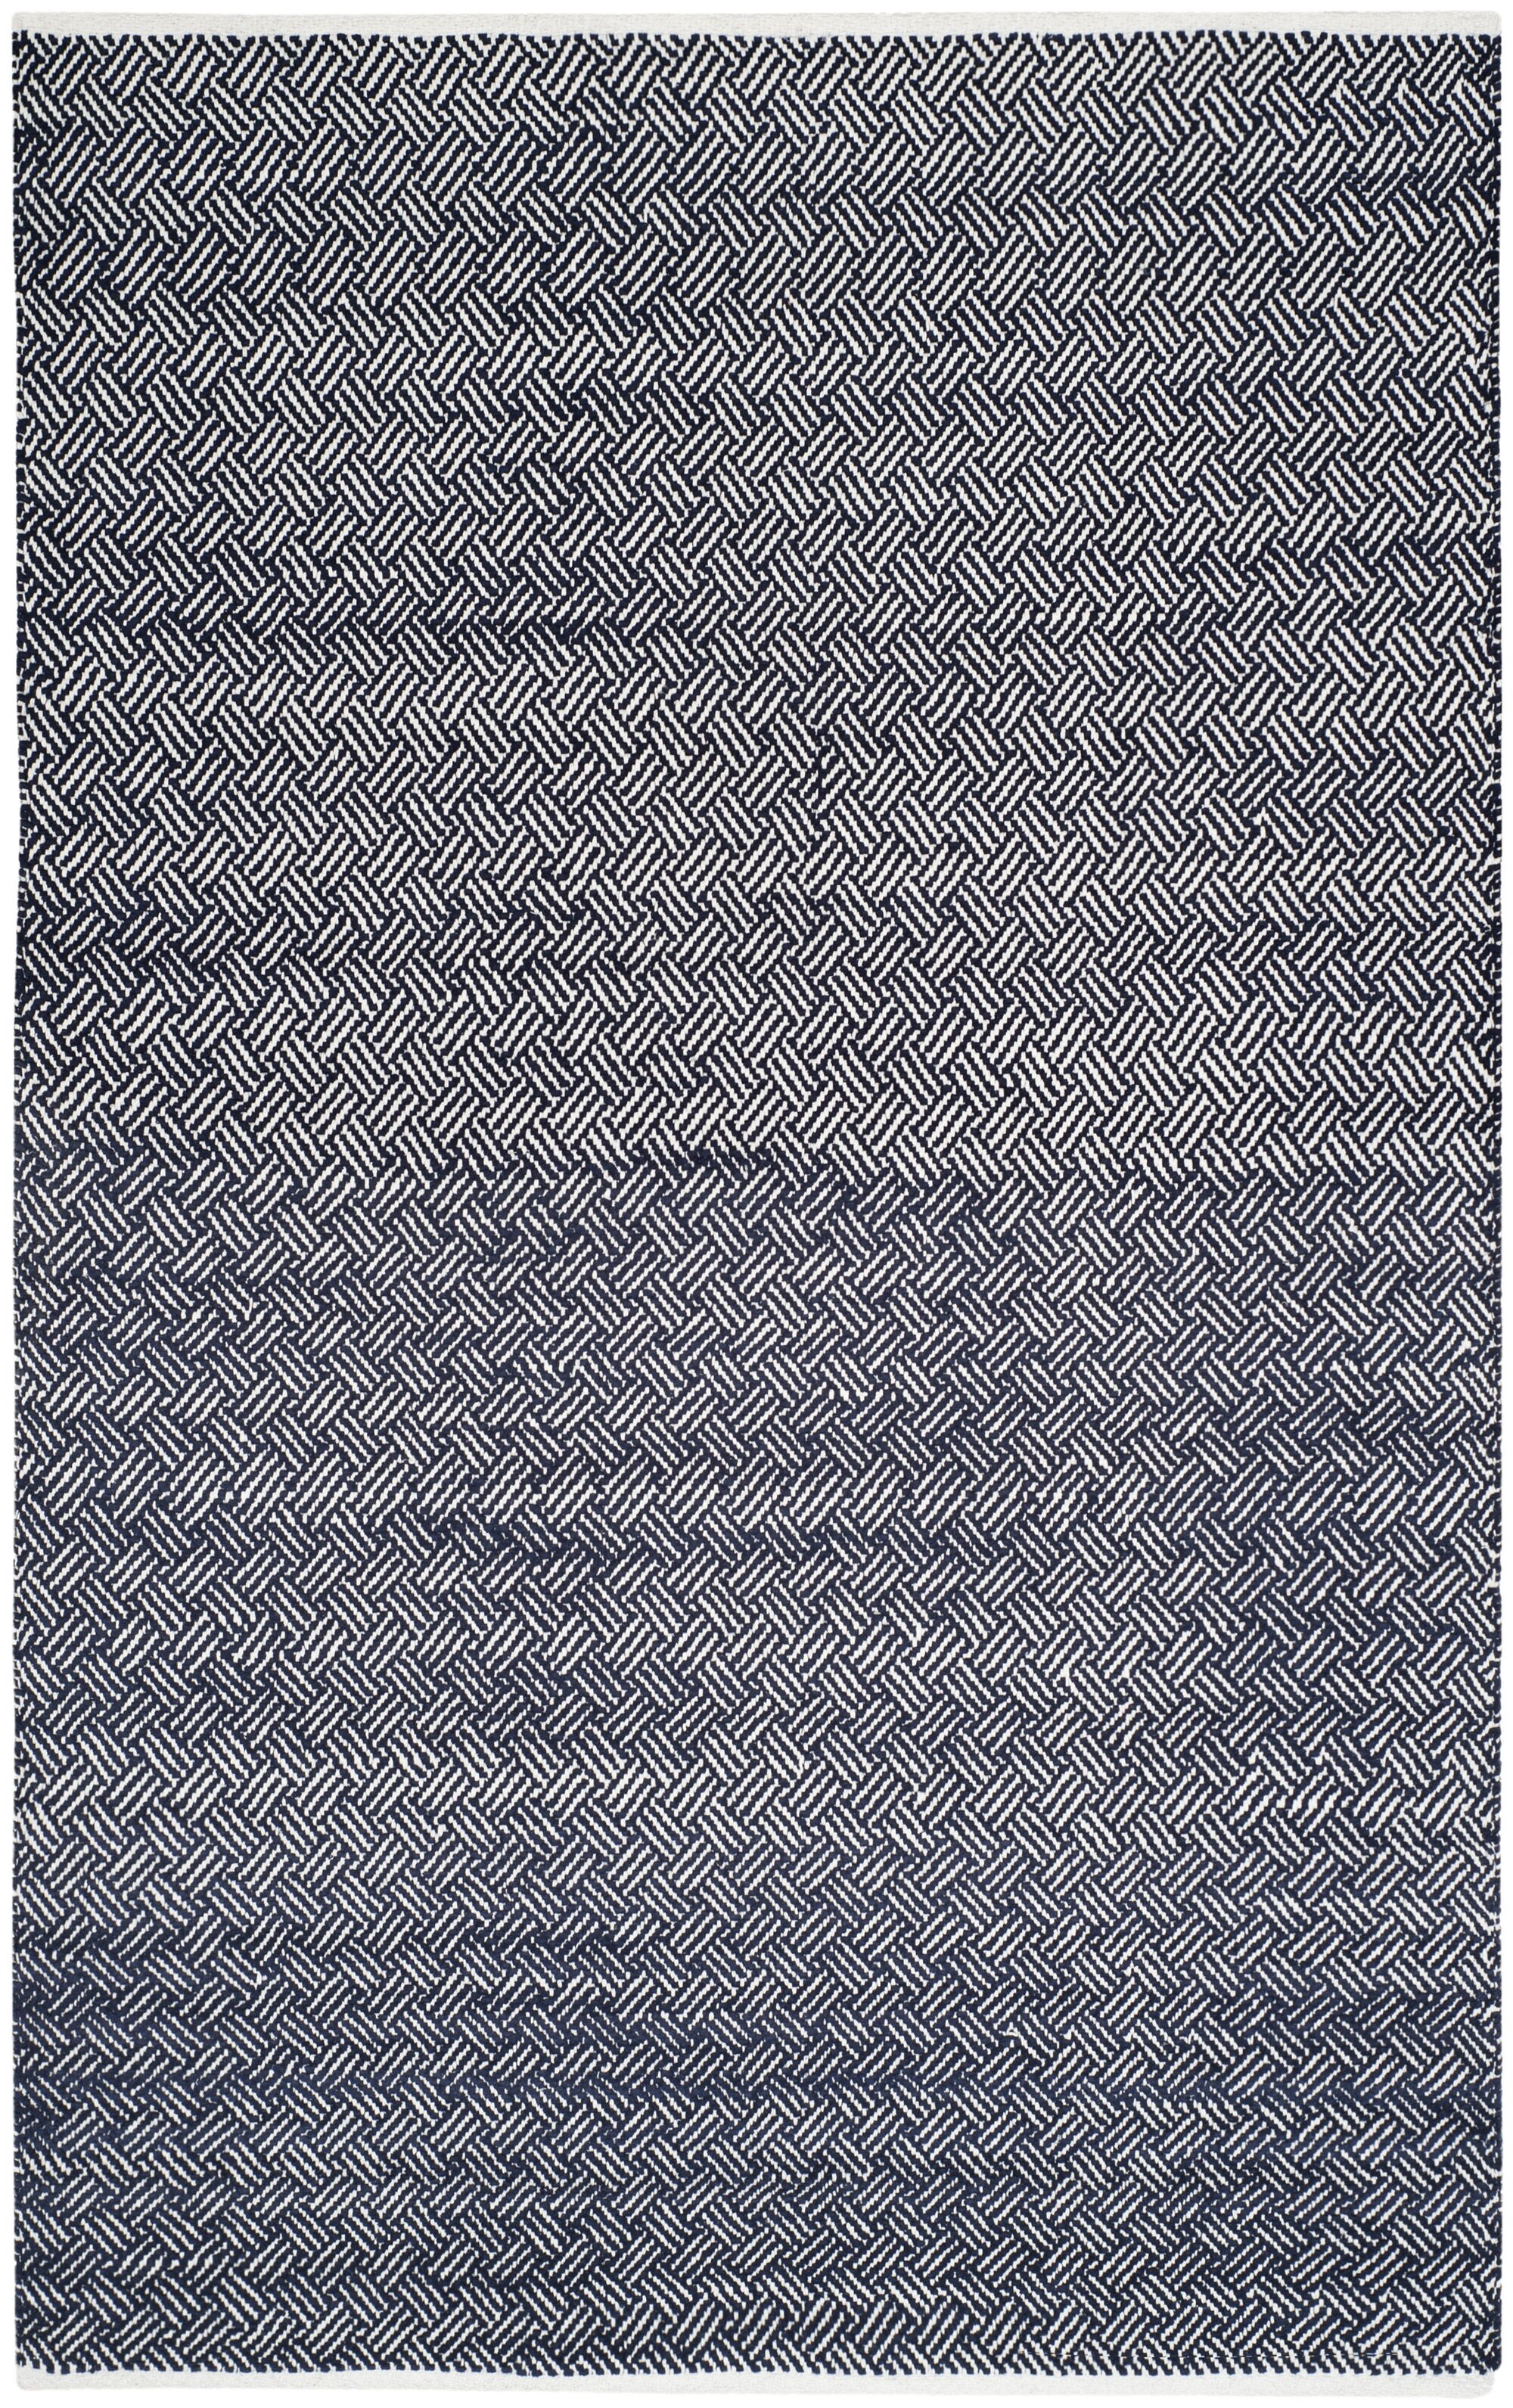 Boston Hand-Woven Navy Area Rug Rug Size: Rectangle 6' x 9'